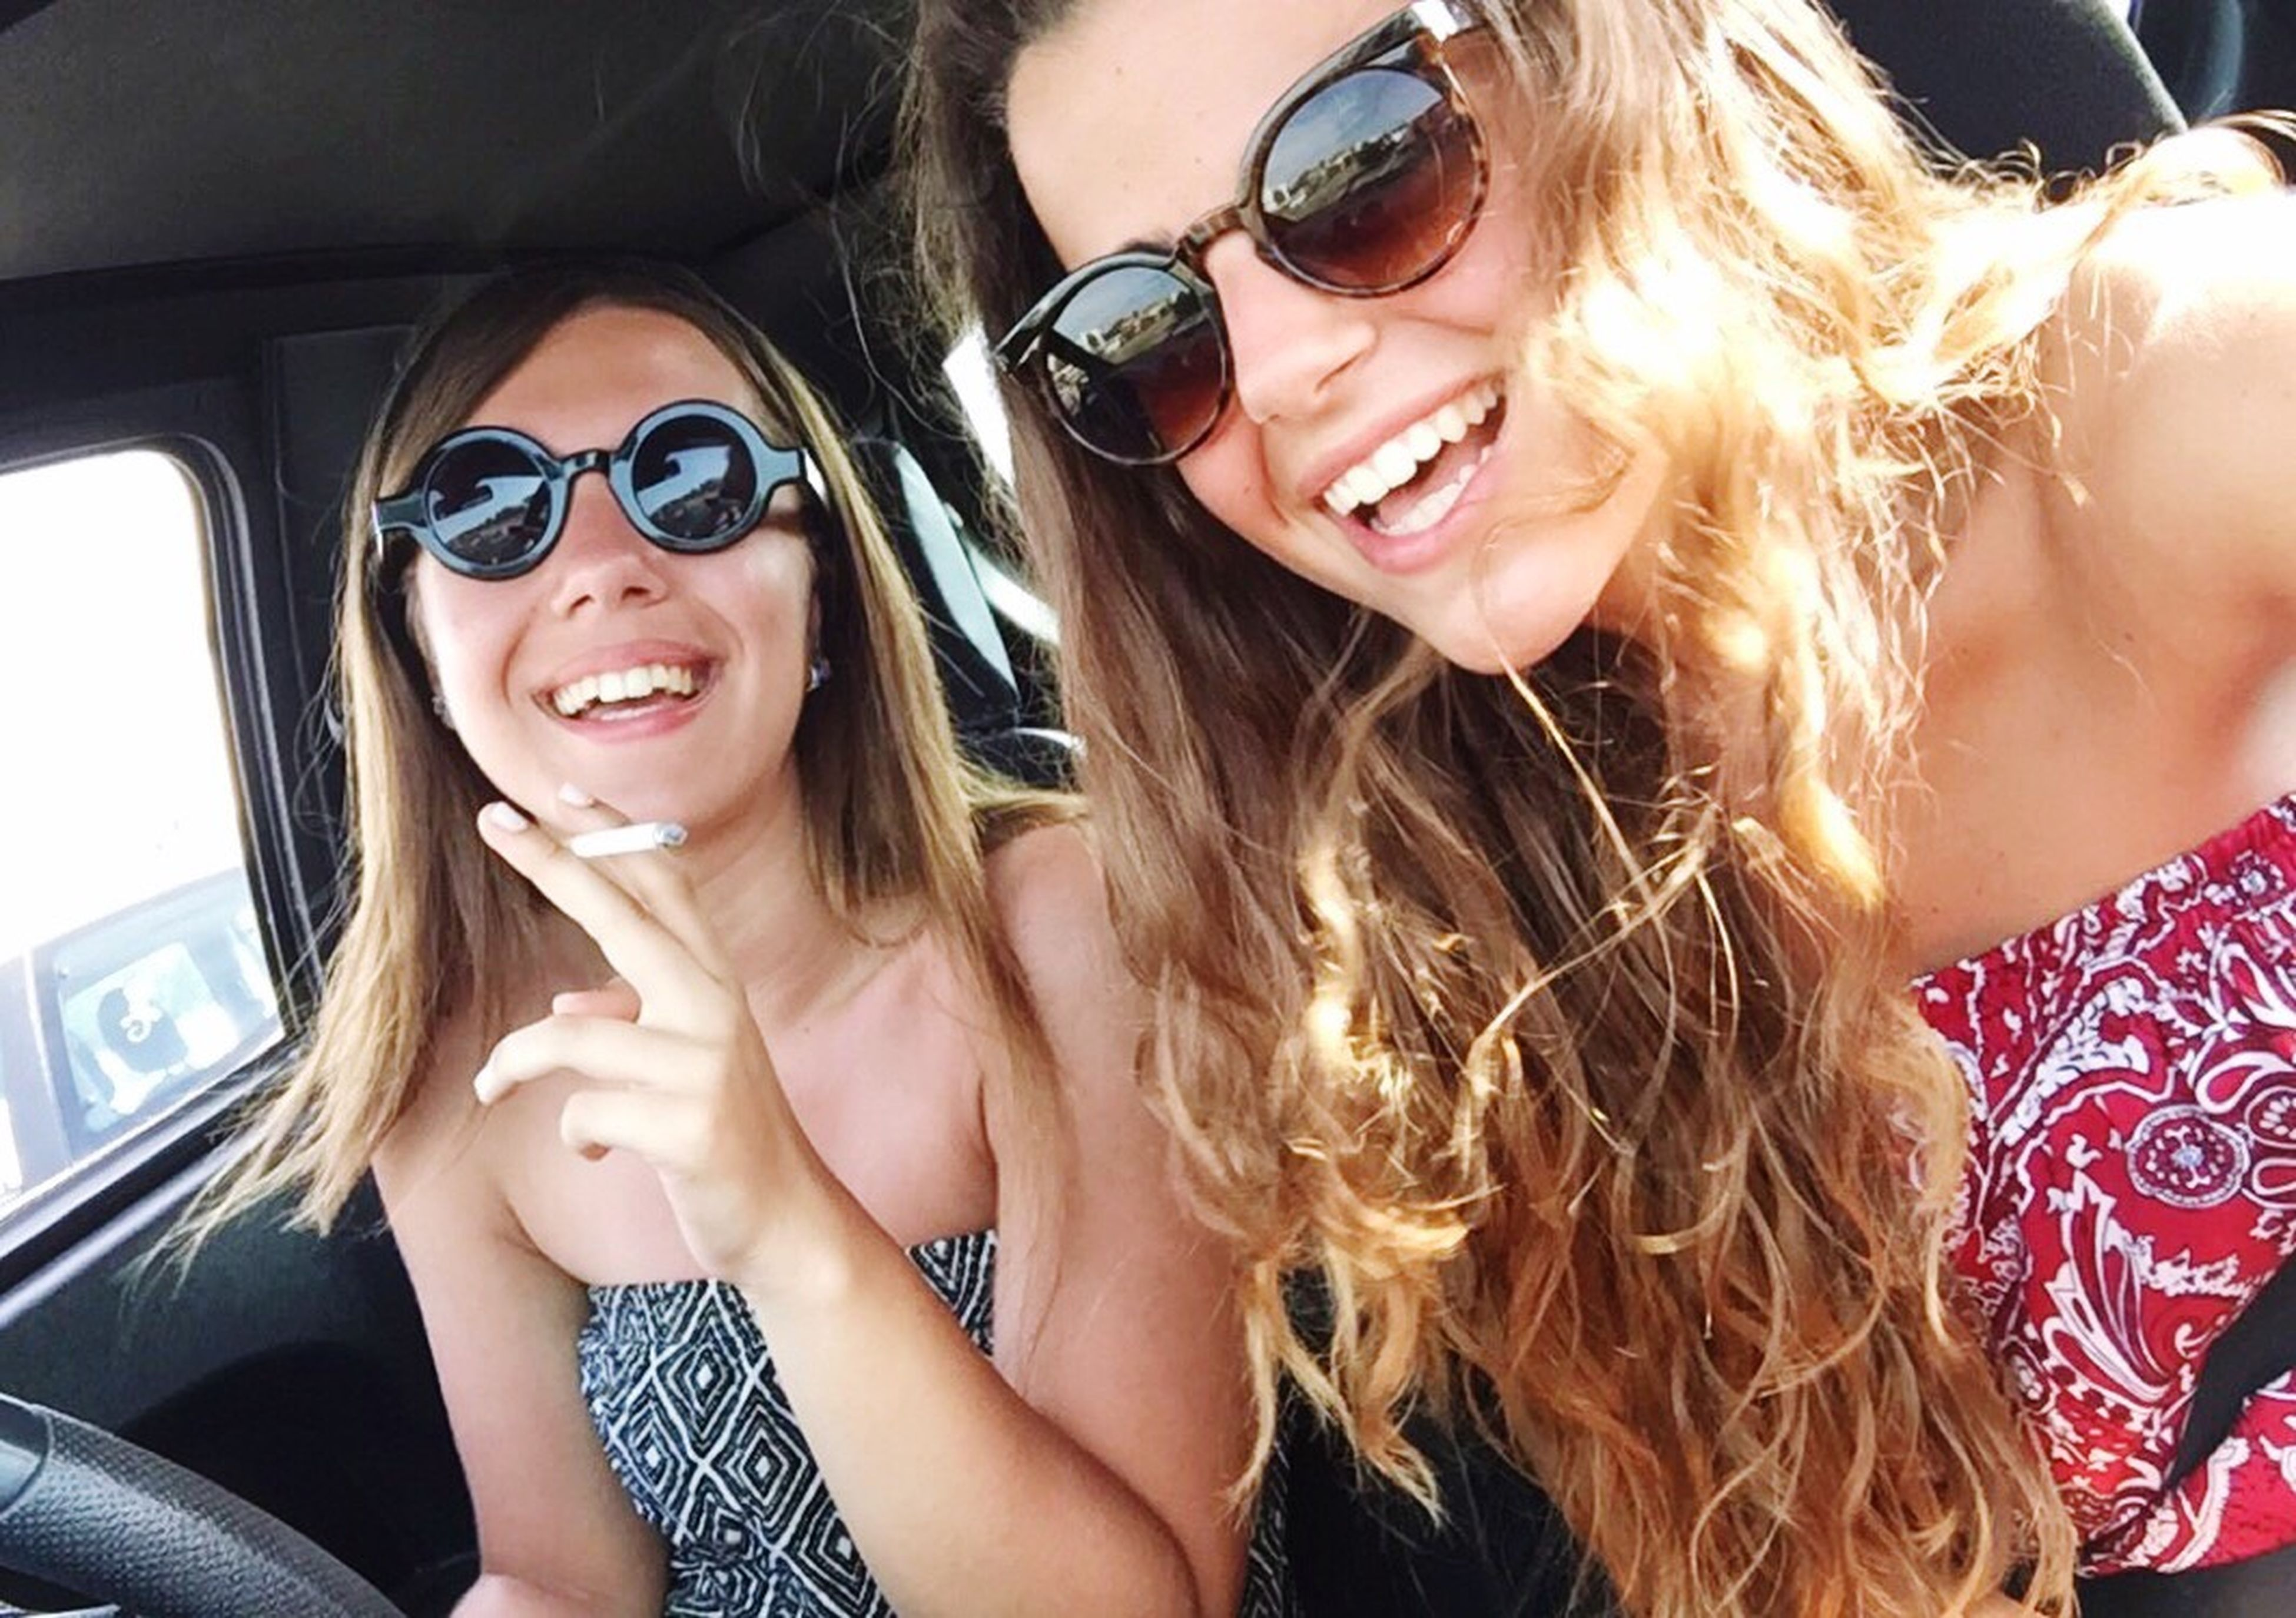 young adult, young women, person, portrait, looking at camera, lifestyles, leisure activity, smiling, front view, long hair, happiness, toothy smile, sunglasses, casual clothing, togetherness, bonding